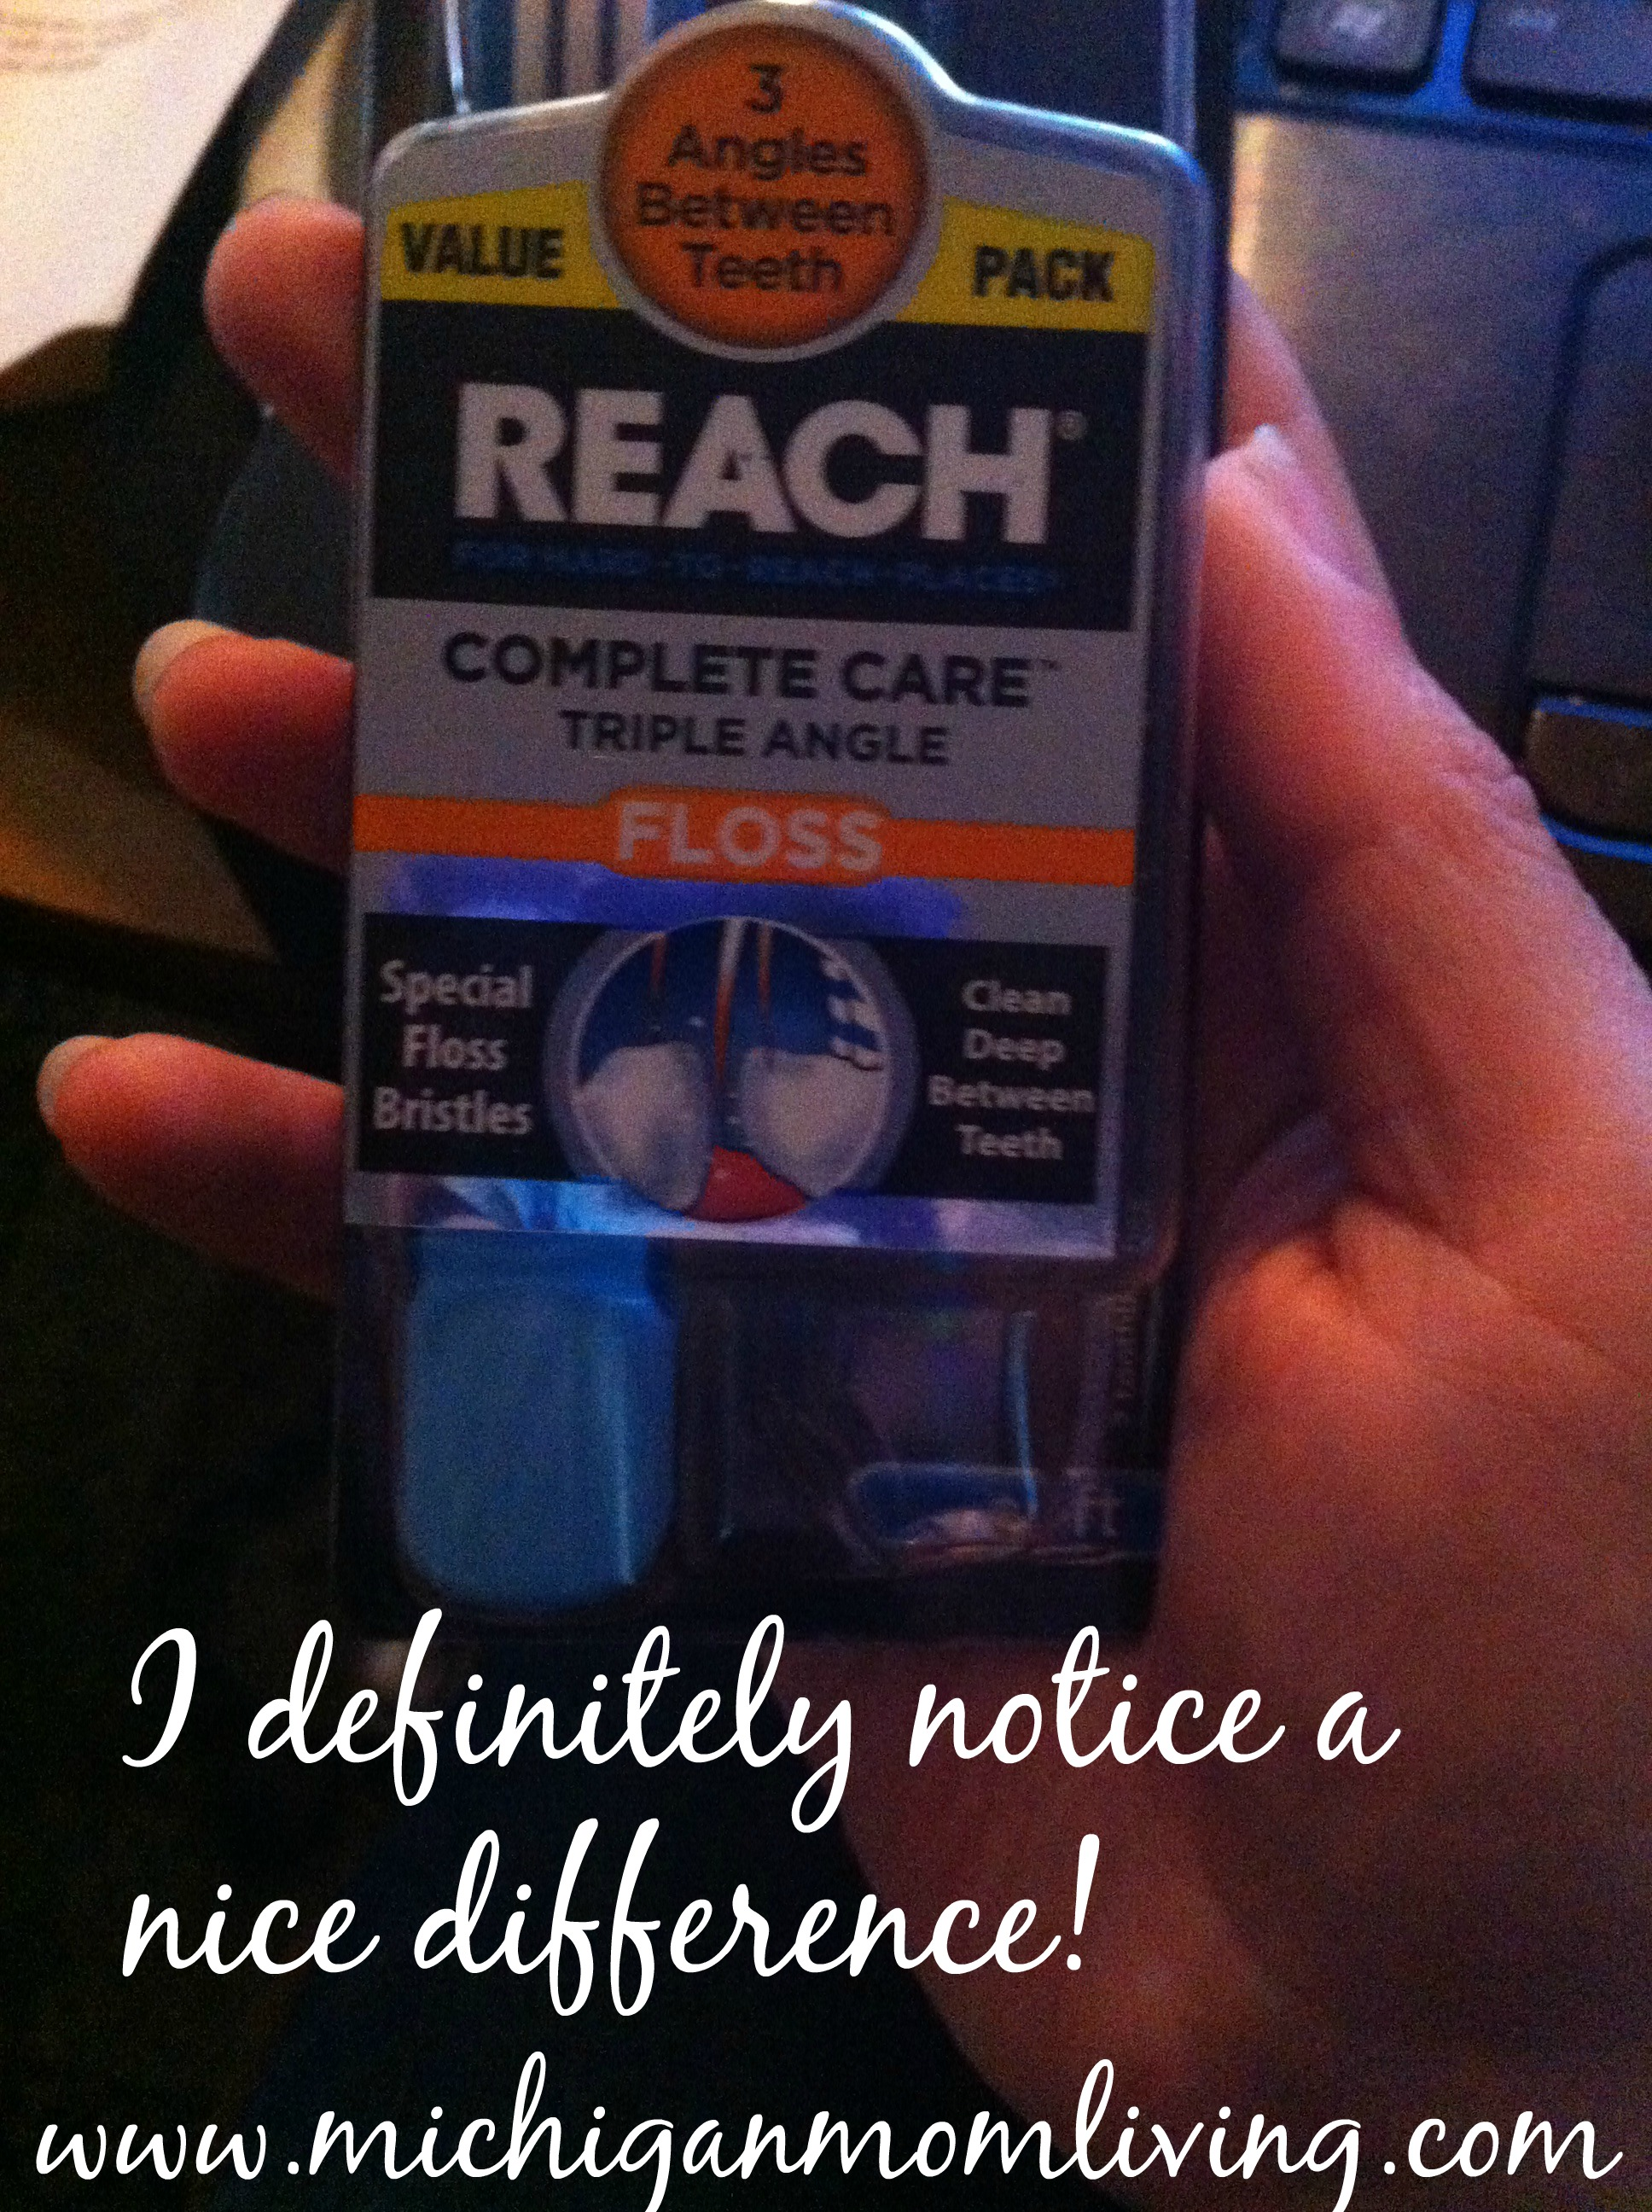 #REACH Complete Care Line Takes Oral Health to a New Level